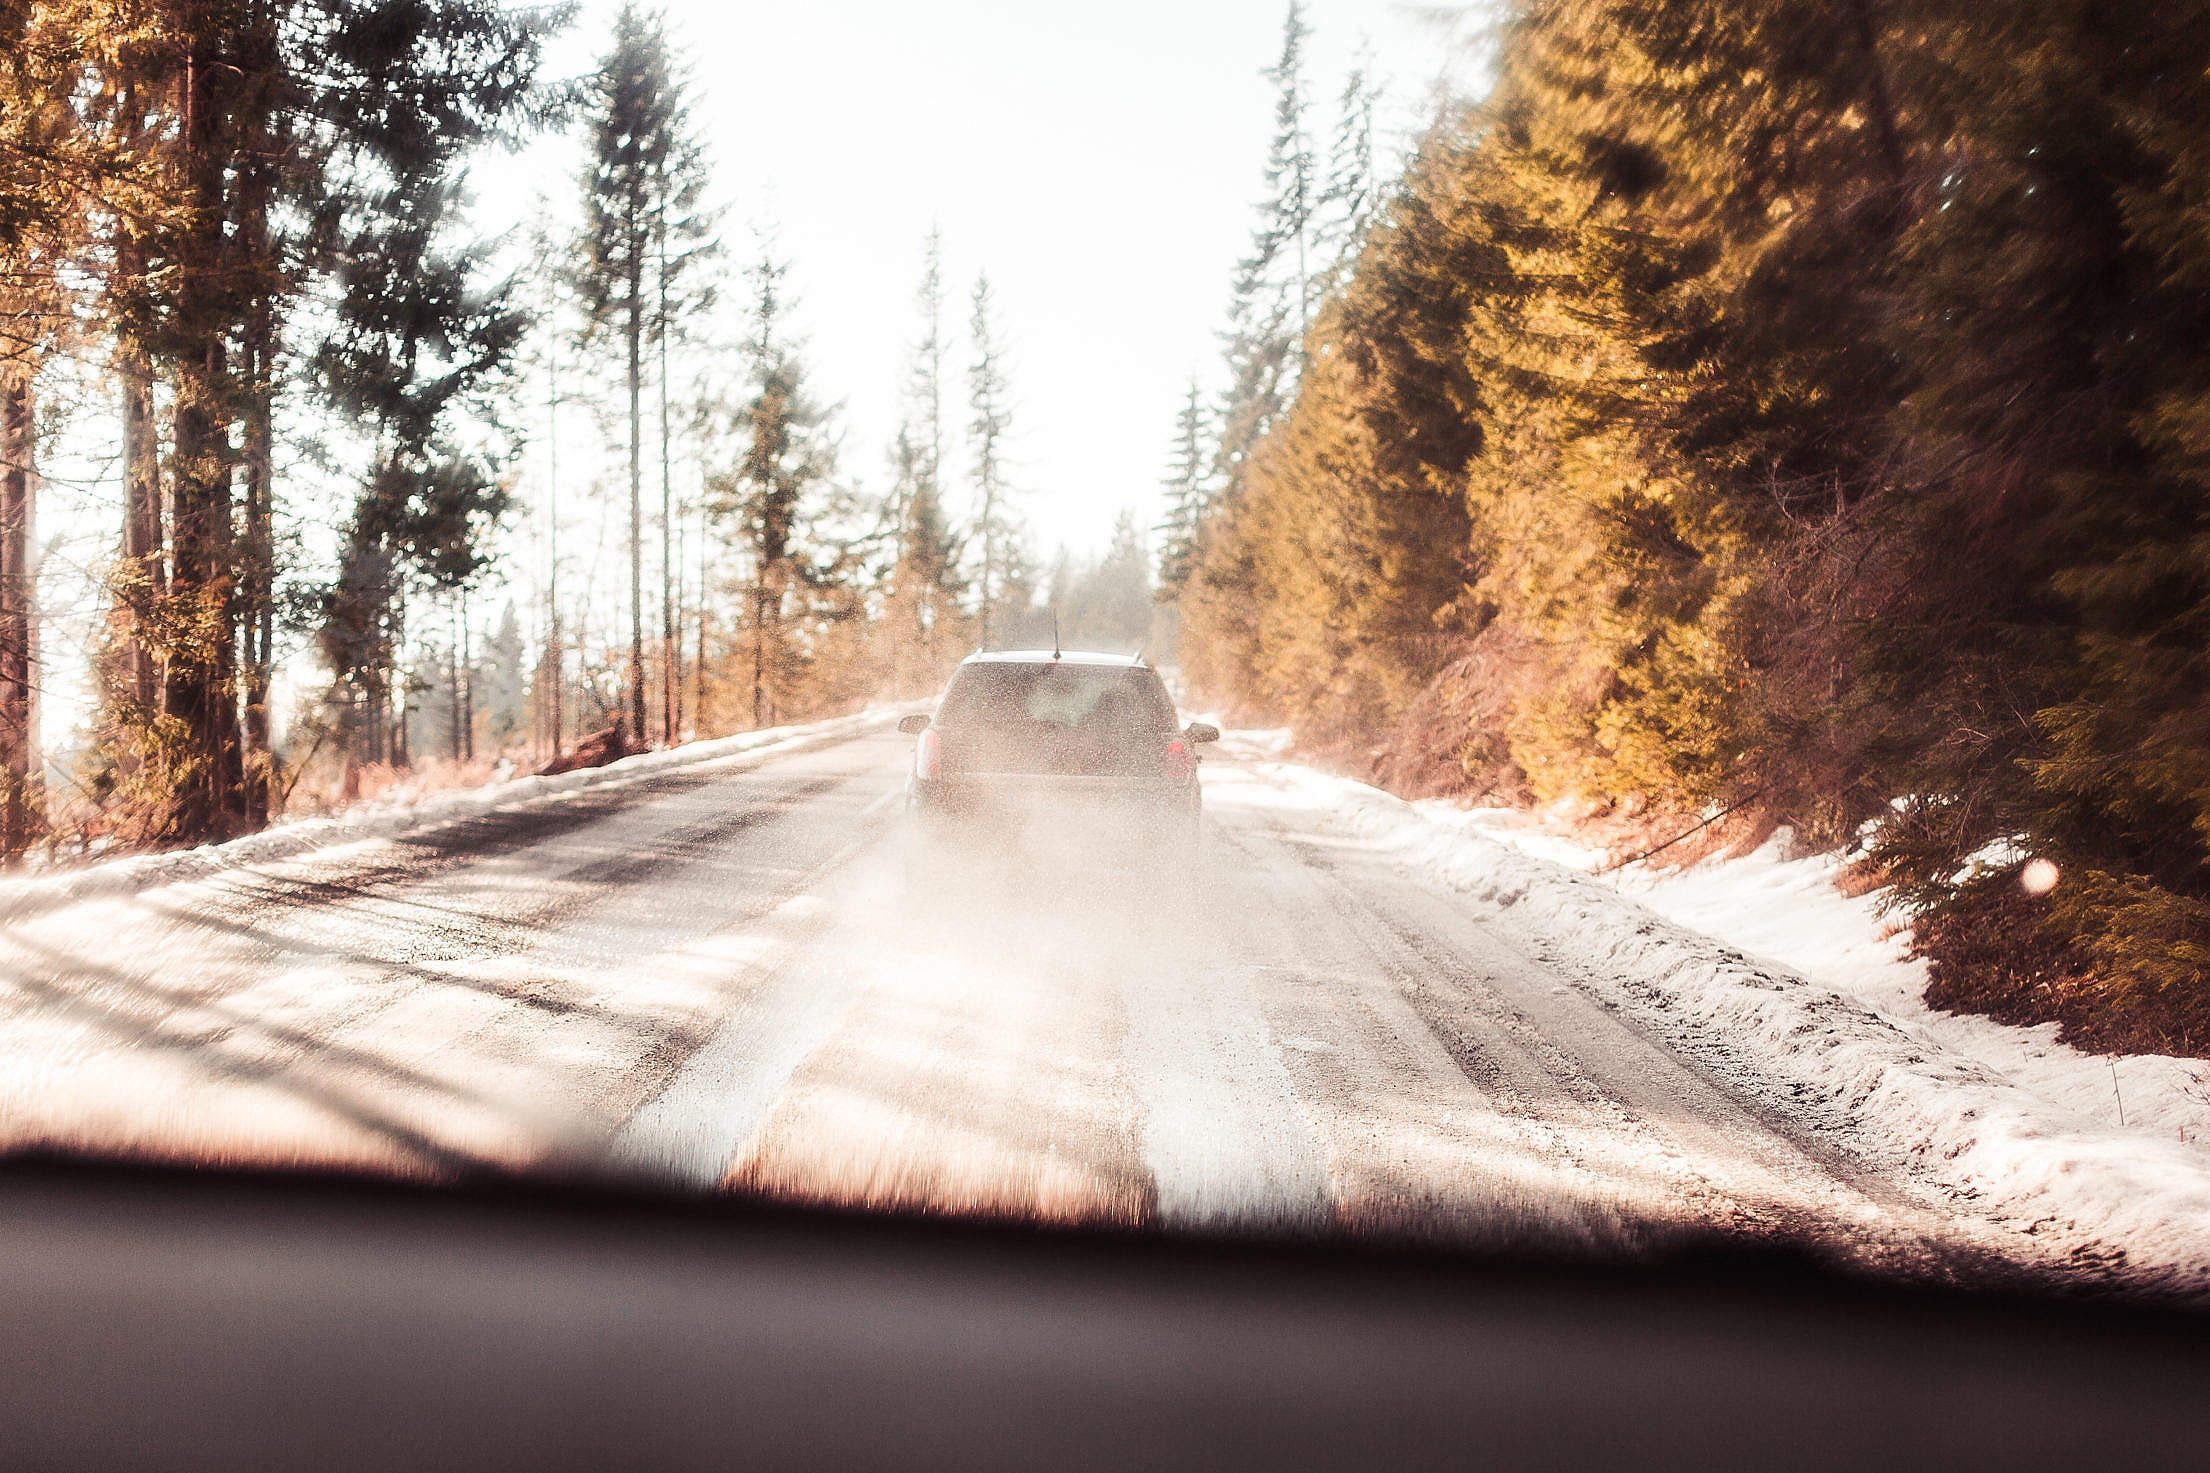 Download Following a Car on Forest Road Free Stock Photo